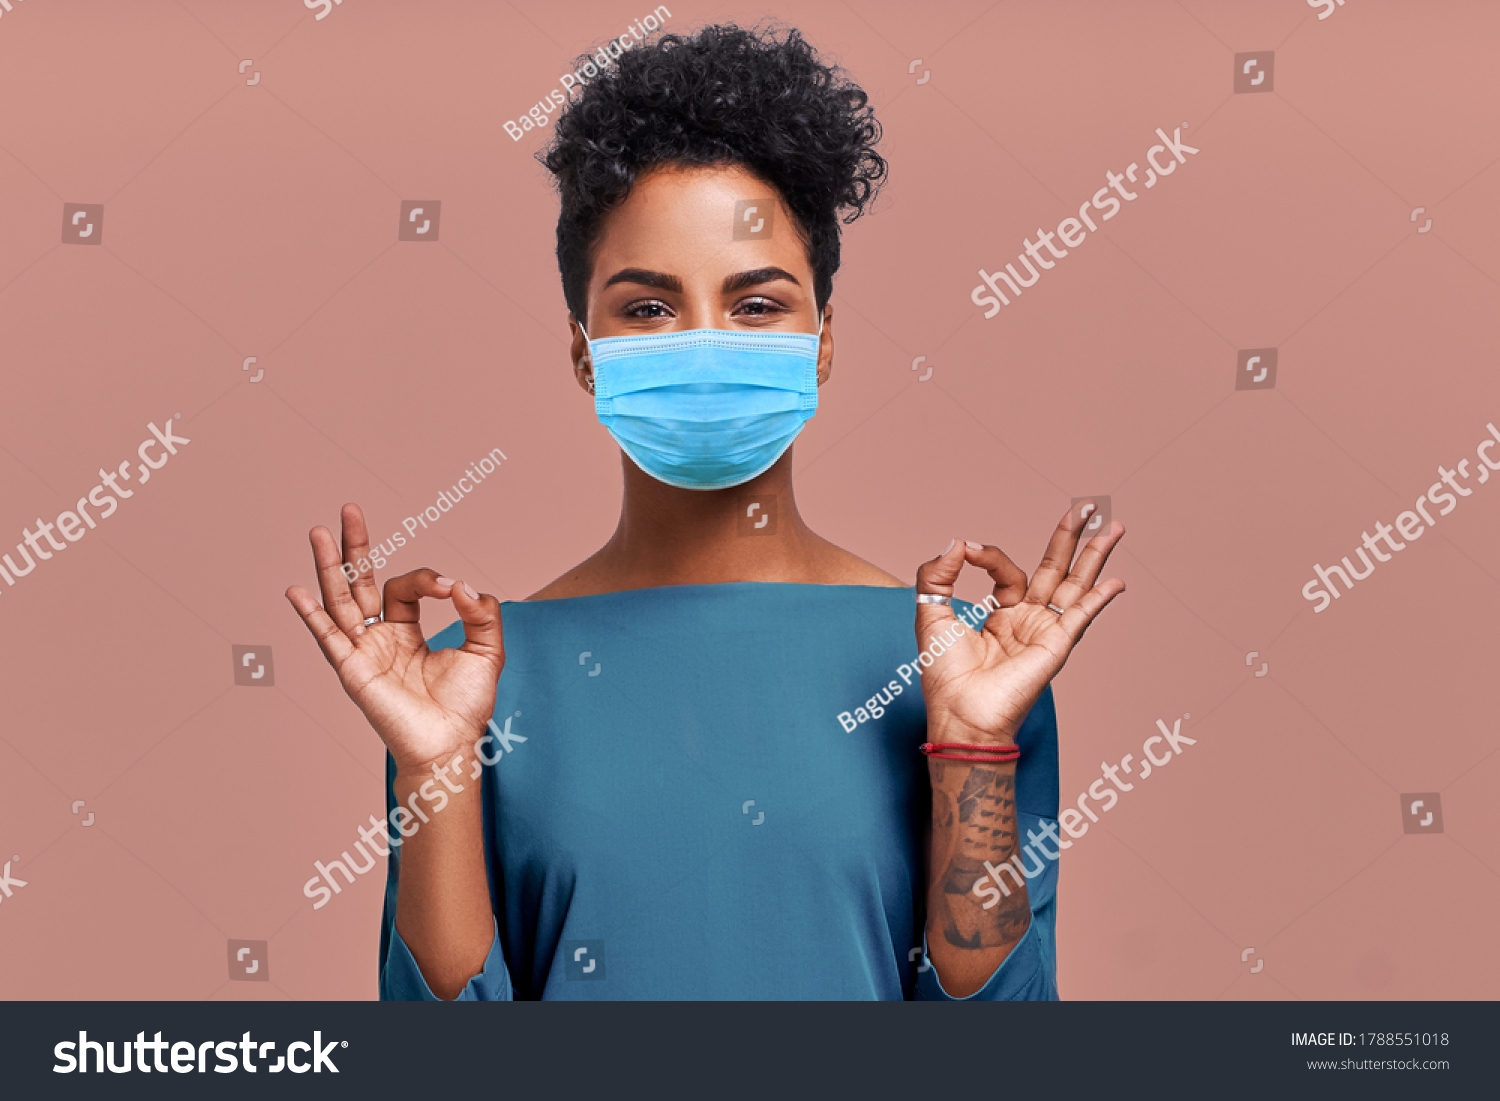 Kind Hearted African American Female Paramedic Wearing Respiratory Mask from Coronavirus Disease During COVID-19 Epidemic, Says Good Job or Well Done, Makes Okay Gesture, Symbol of Approval and Like #1788551018